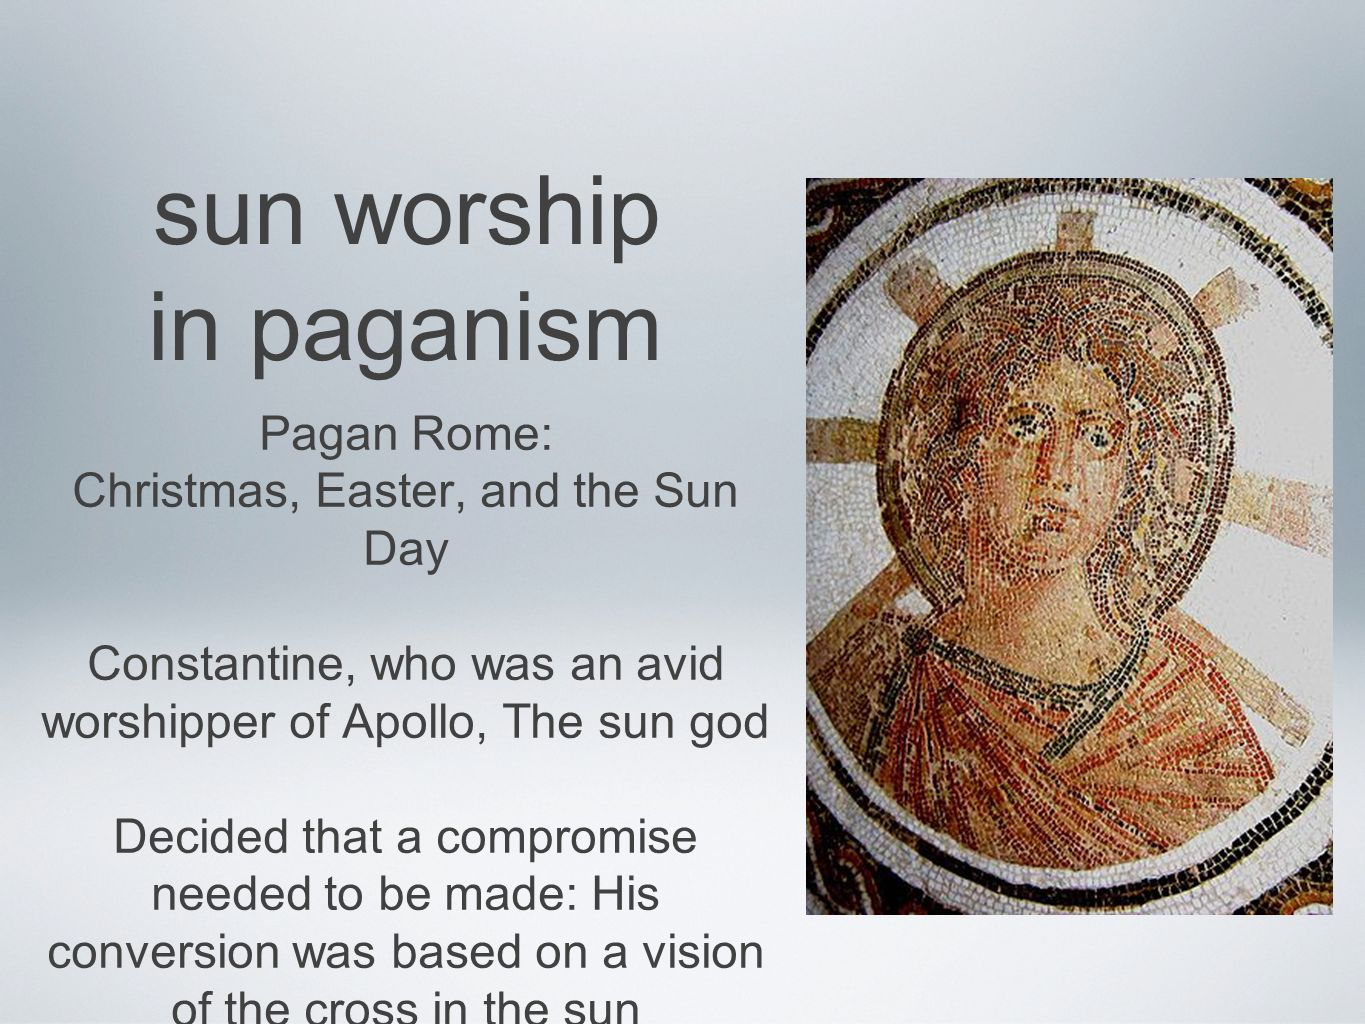 sun worship in paganism Pagan Rome: Christmas, Easter, and the Sun Day Constantine, who was an avid worshipper of Apollo, The sun god Decided that a compromise needed to be made: His conversion was based on a vision of the cross in the sun